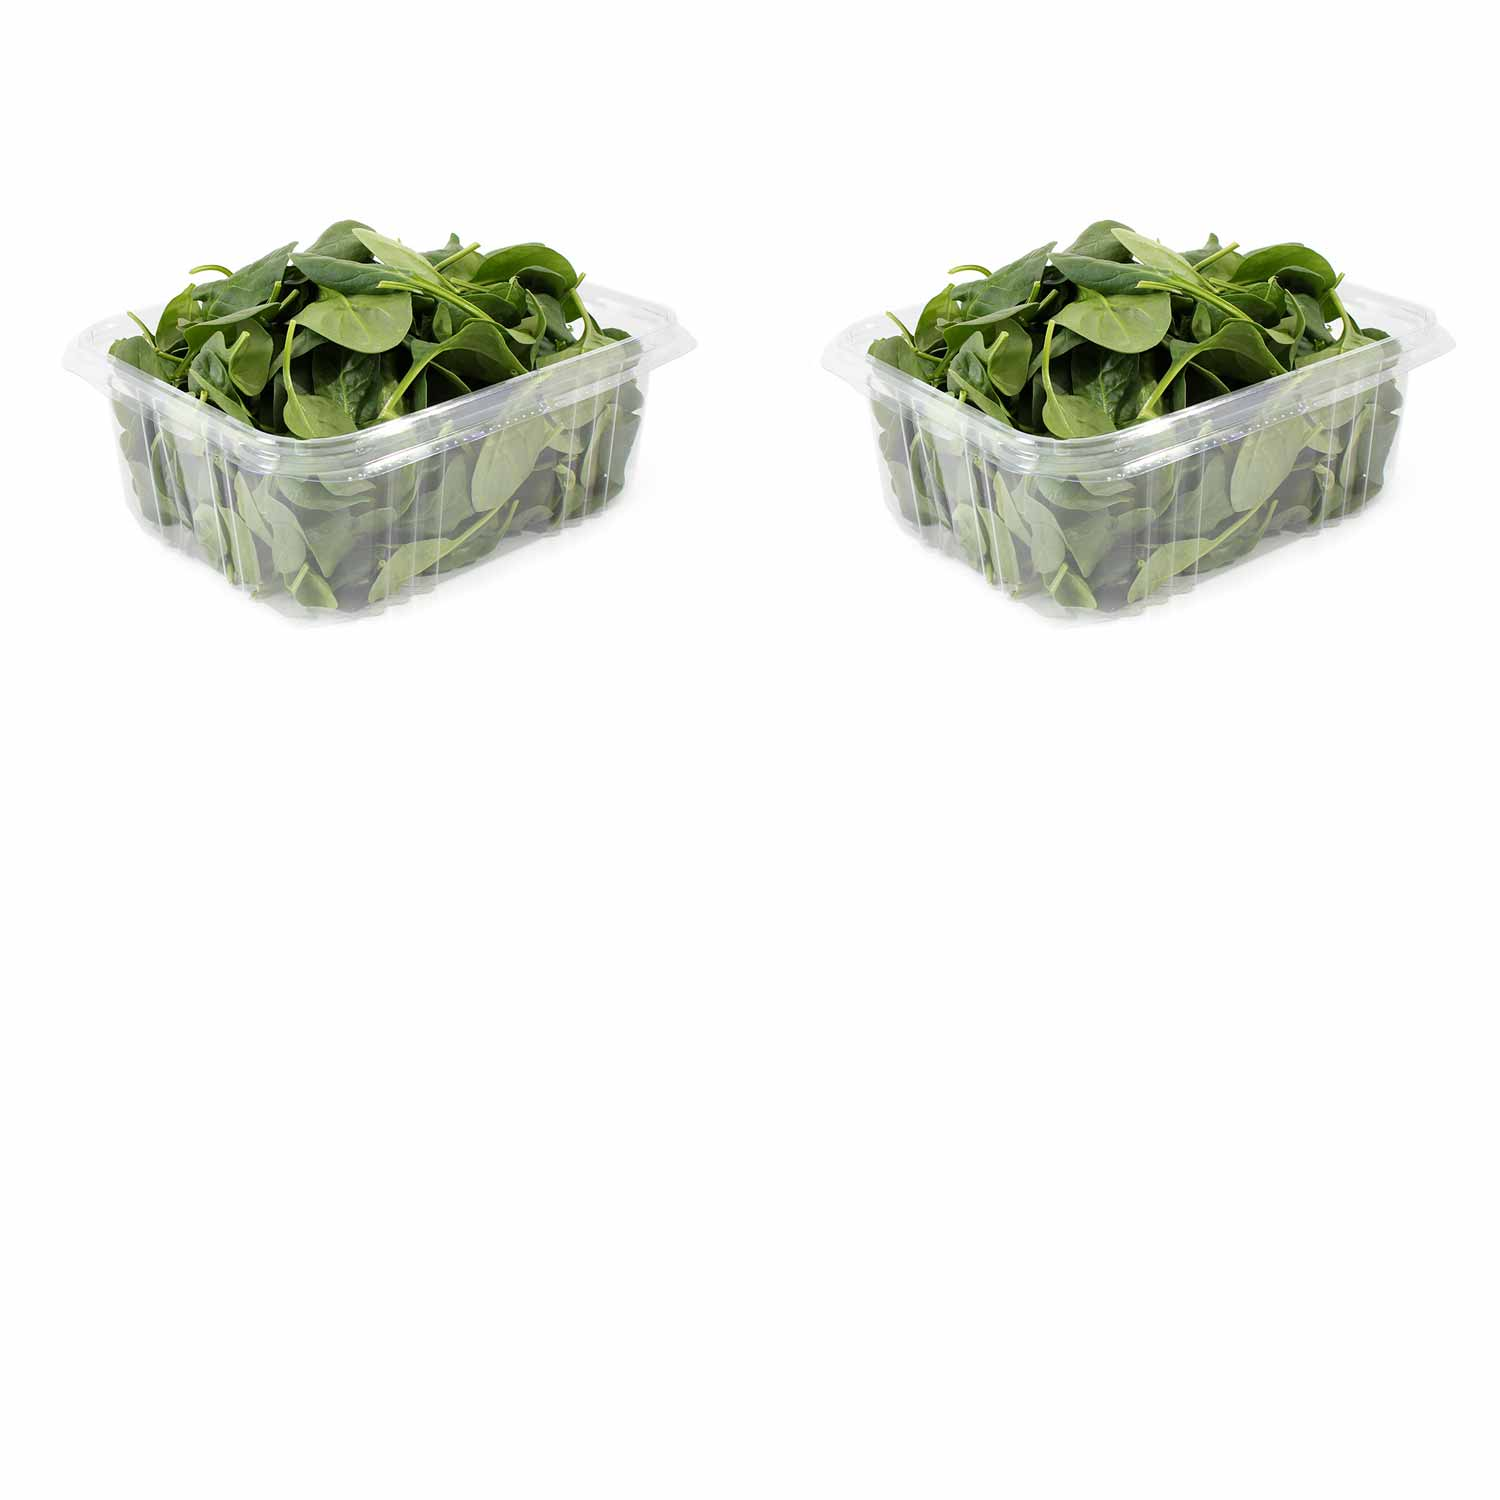 Baby Spinach 2-pack (Organic)